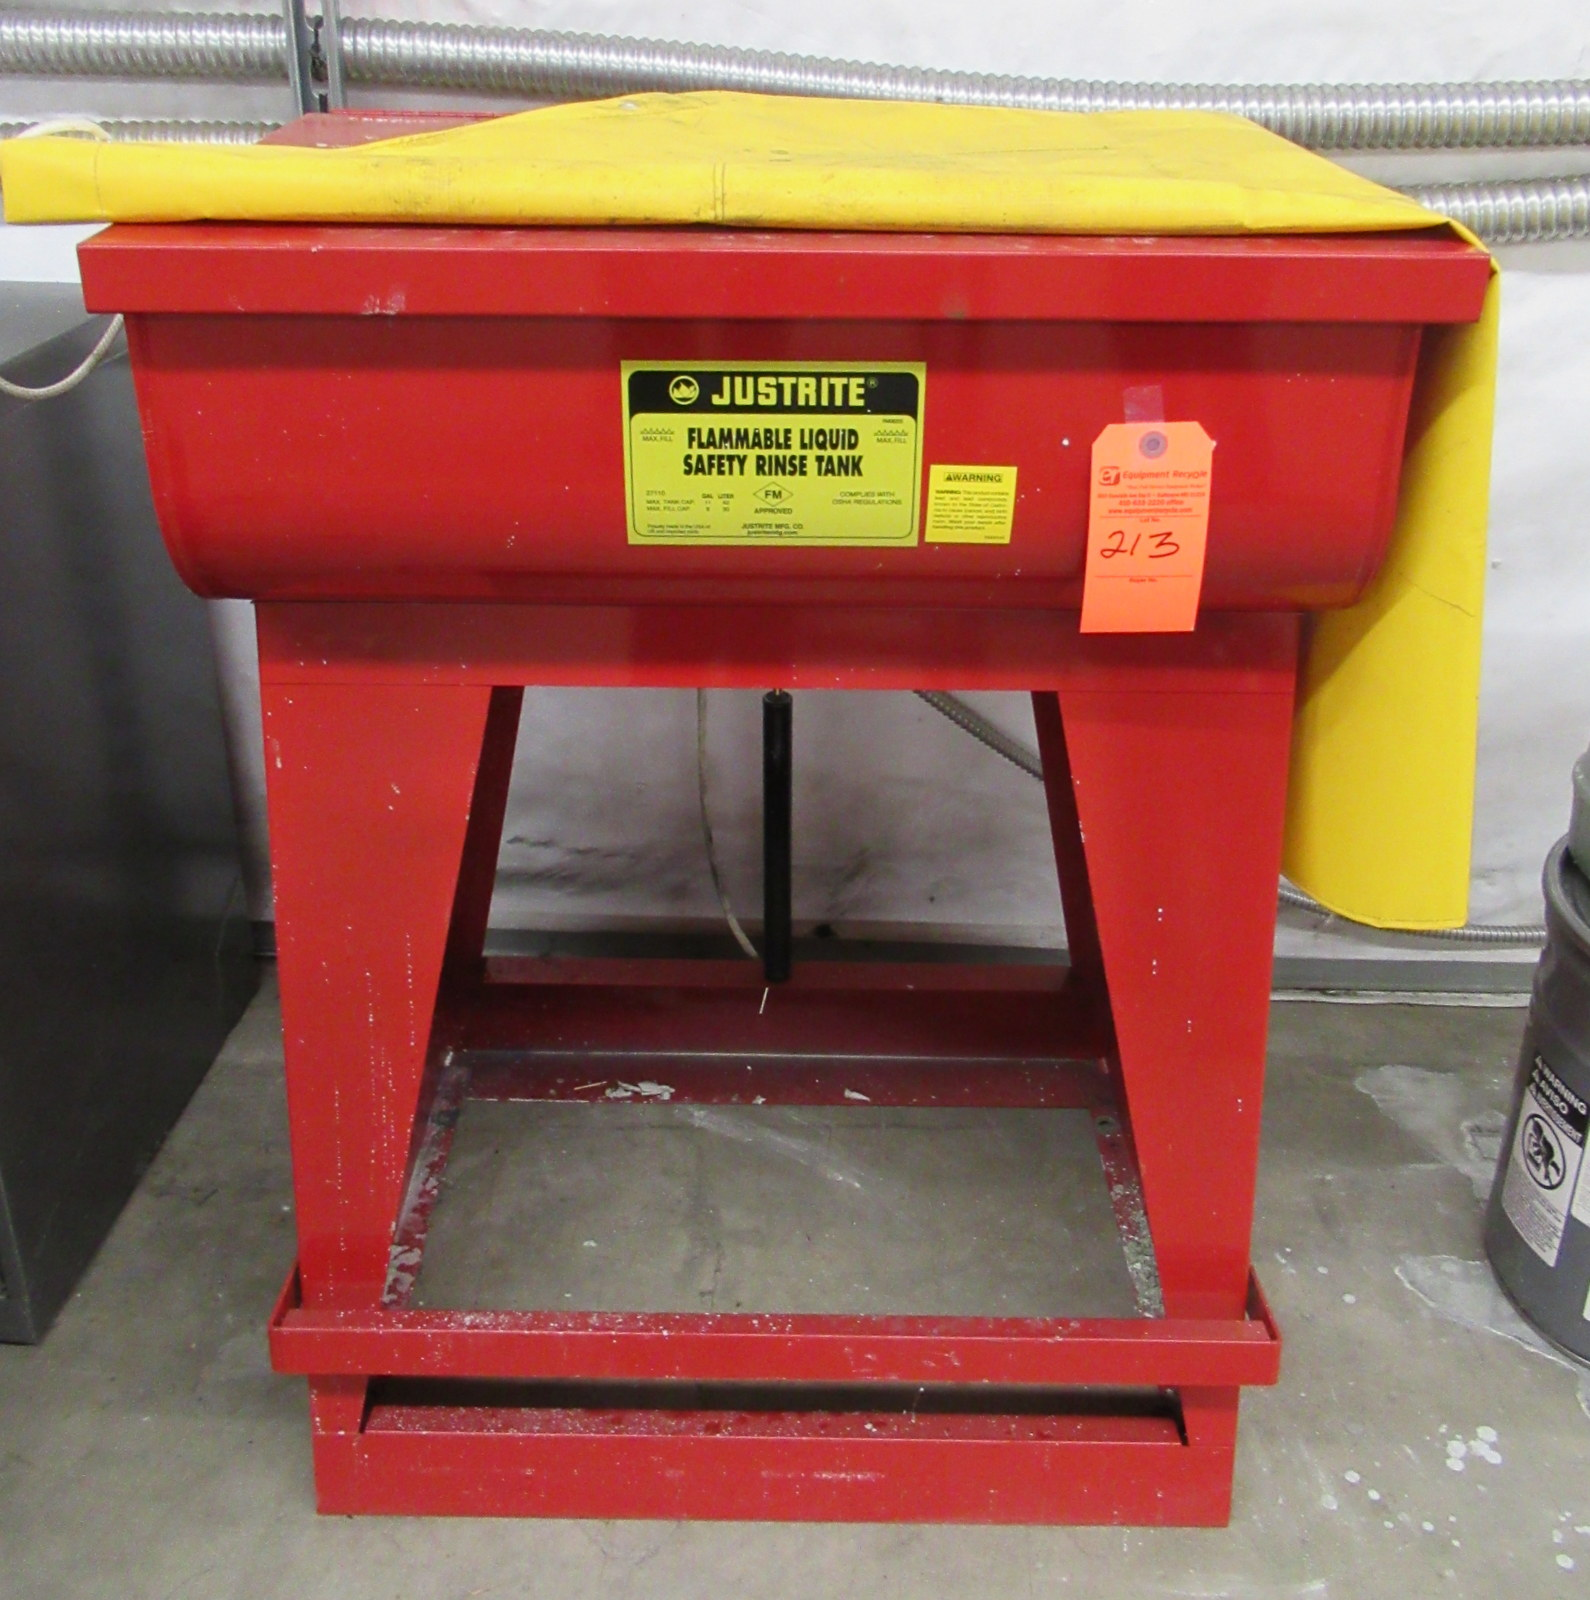 Lot 213 - Justrite Flammable Liquid Rinse Tank & Apron 11 Gallon